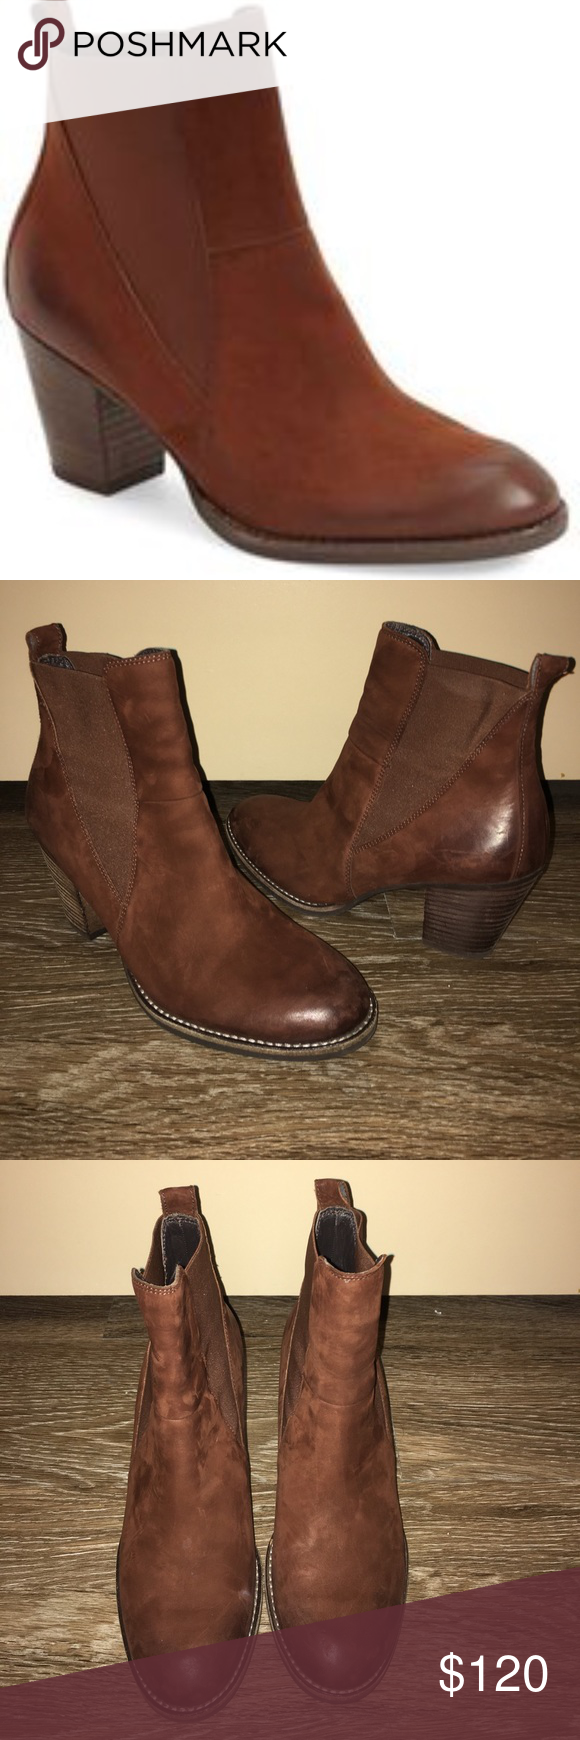 b731d1e5fe30 Paul Green Jules Block Heel Chelsea Boots 7 Gently worn size Paul Green 4  1 2 which is a Us 7 Paul Green Shoes Ankle Boots   Booties